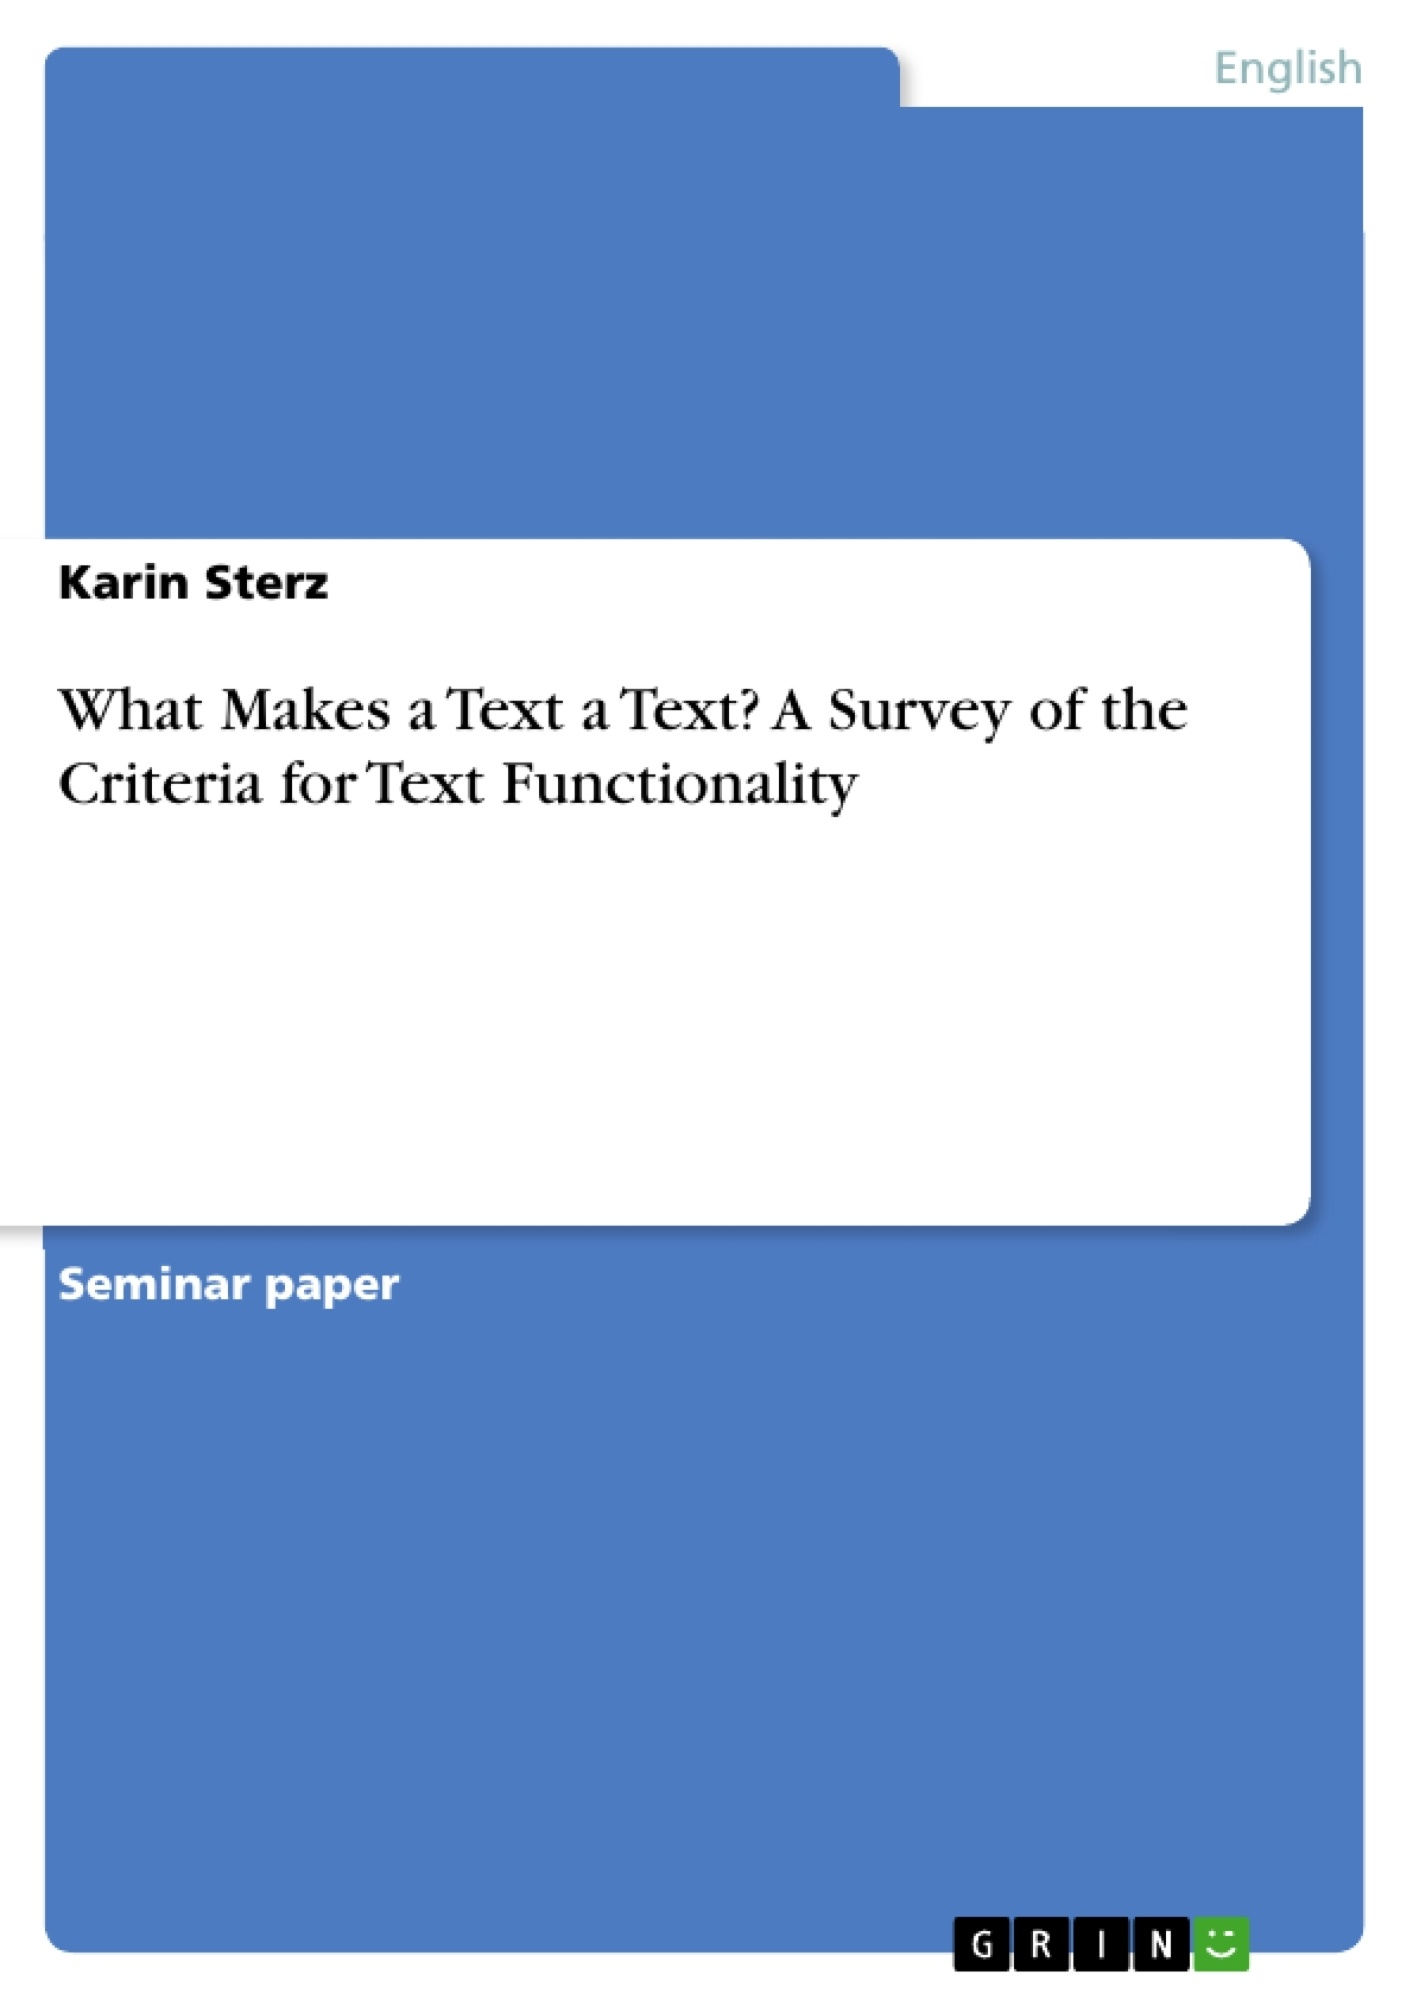 Title: What Makes a Text a Text? A Survey of the Criteria for Text Functionality